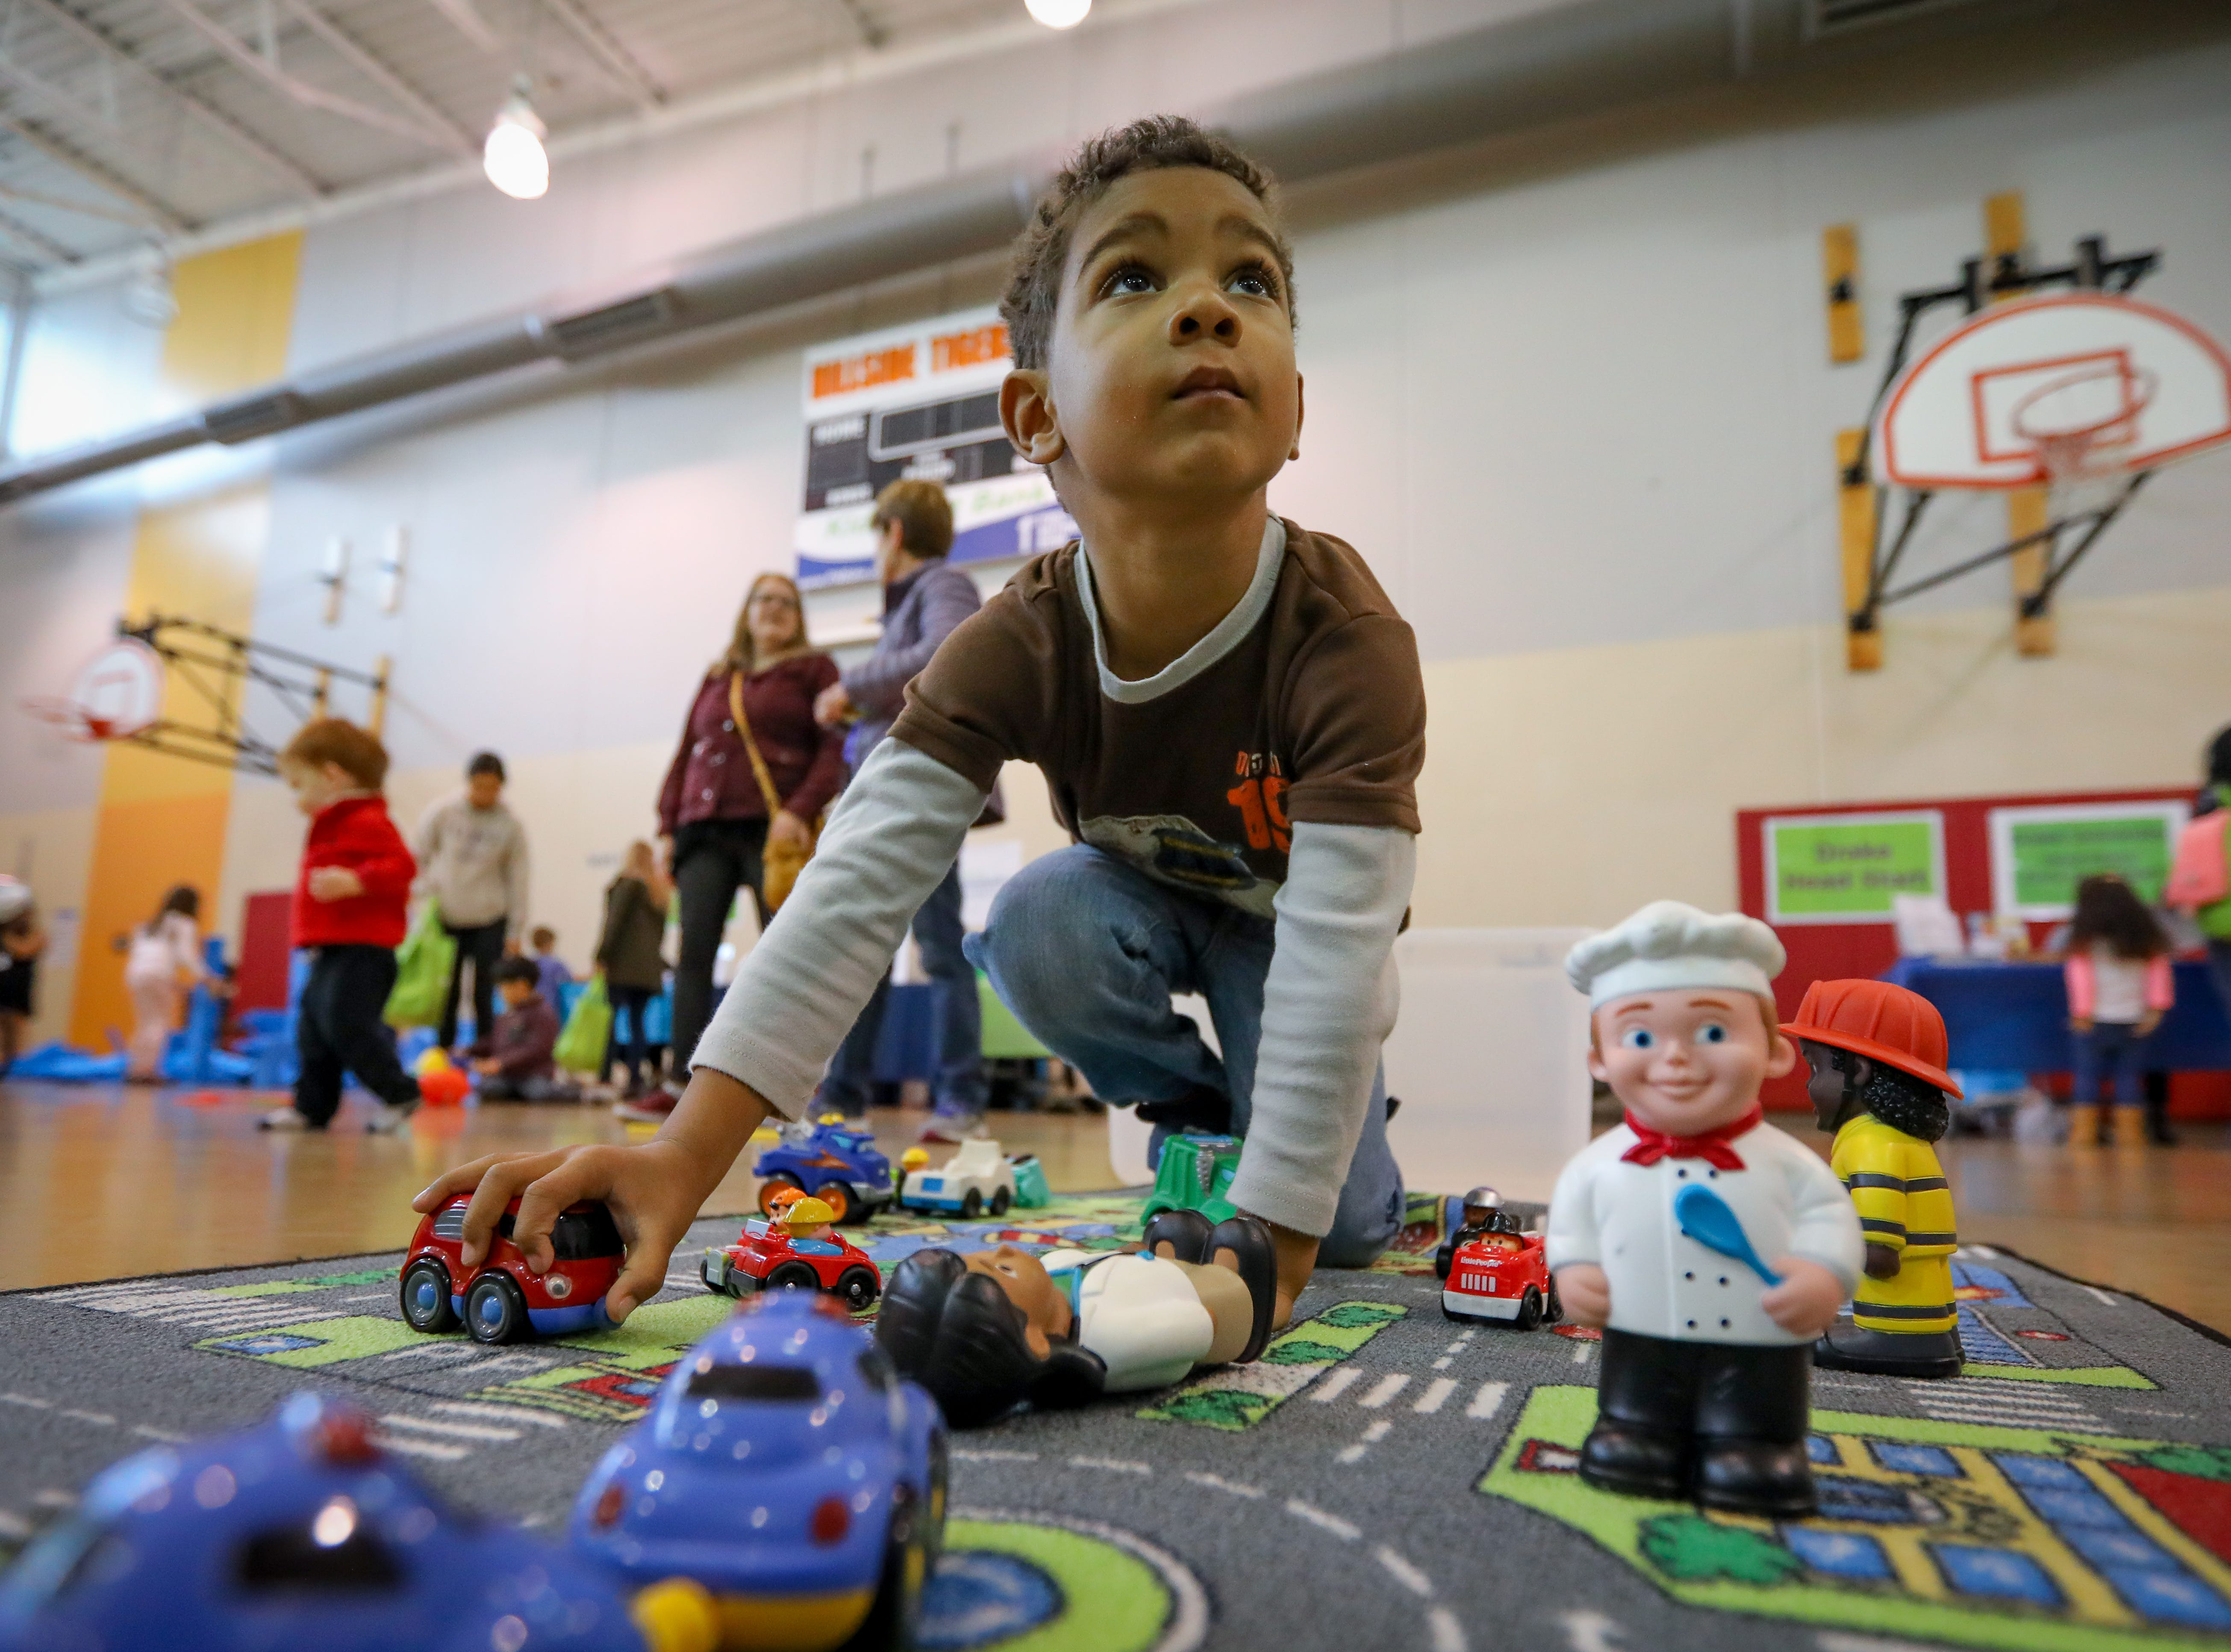 A young kid participates in the Preschool Palooza at Hillside Elementary School on Saturday, Nov. 3, 2018 in Des Moines, Iowa.